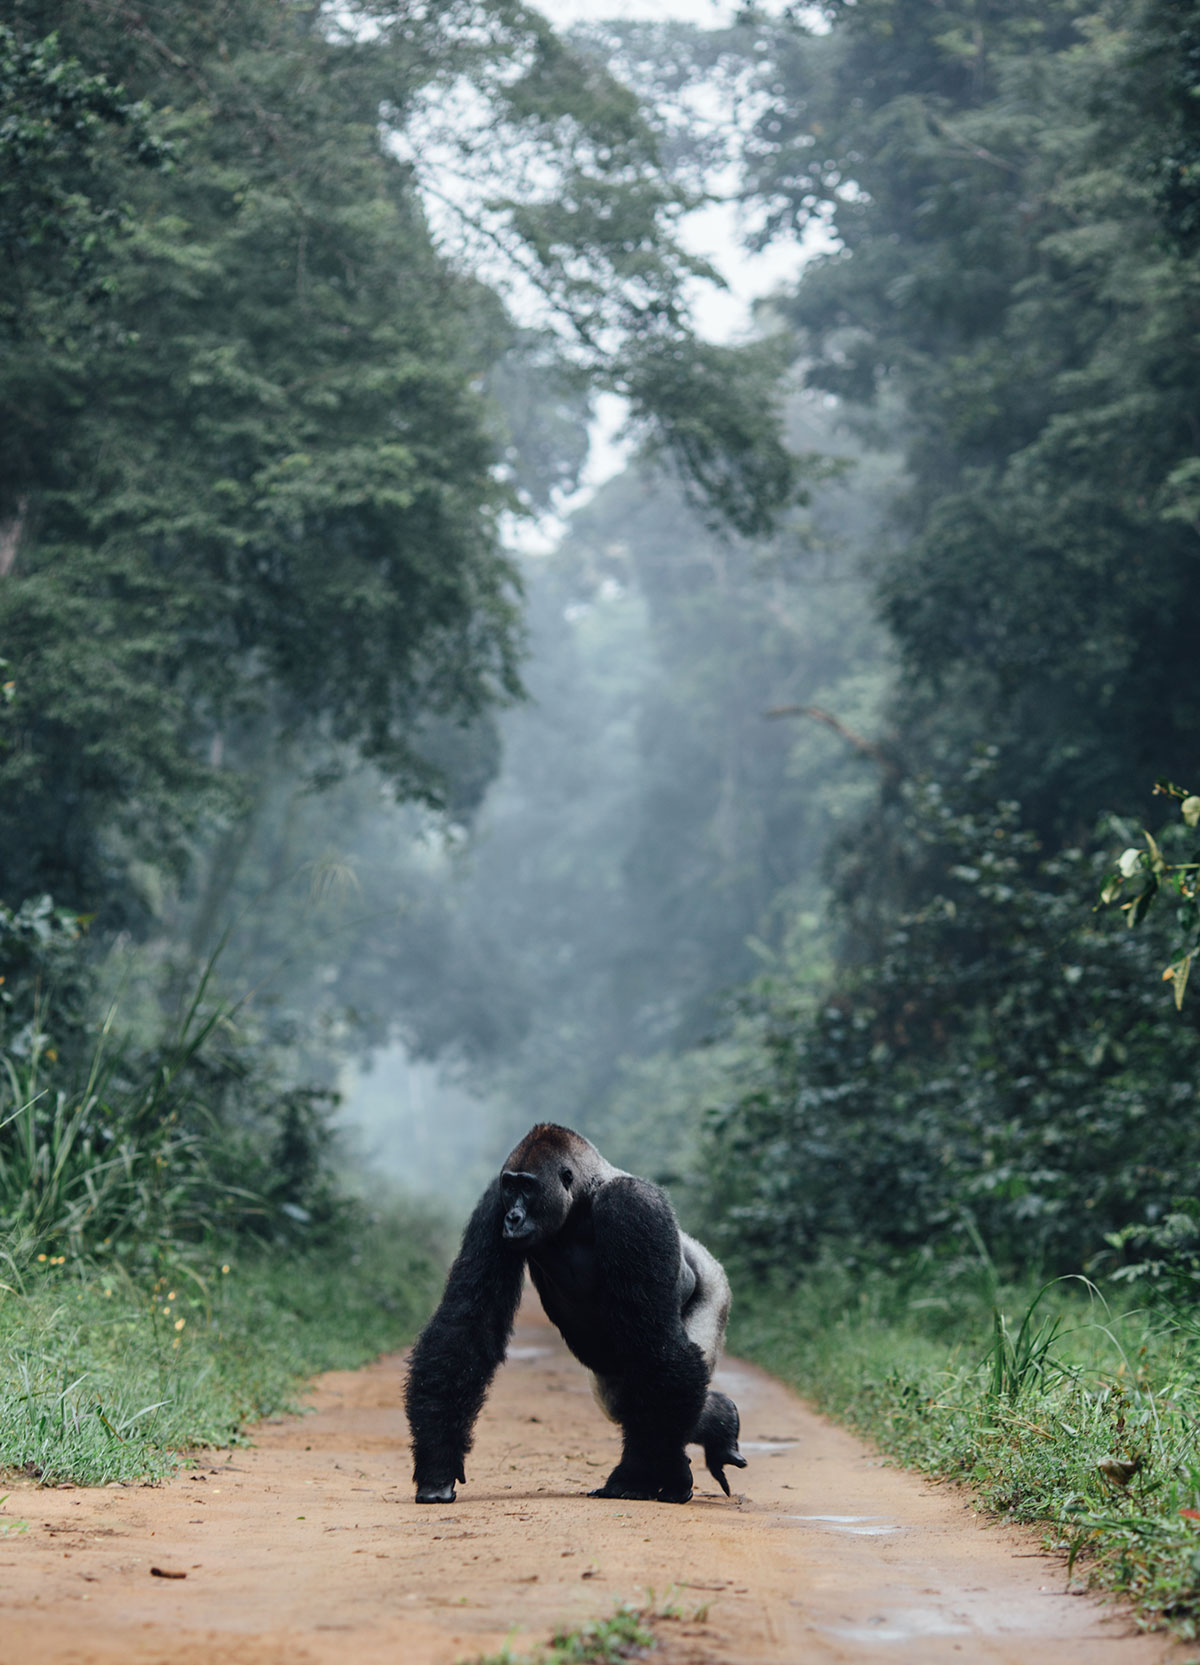 Western-Lowland-Gorilla-walking-across-the-only-road-through-the-park